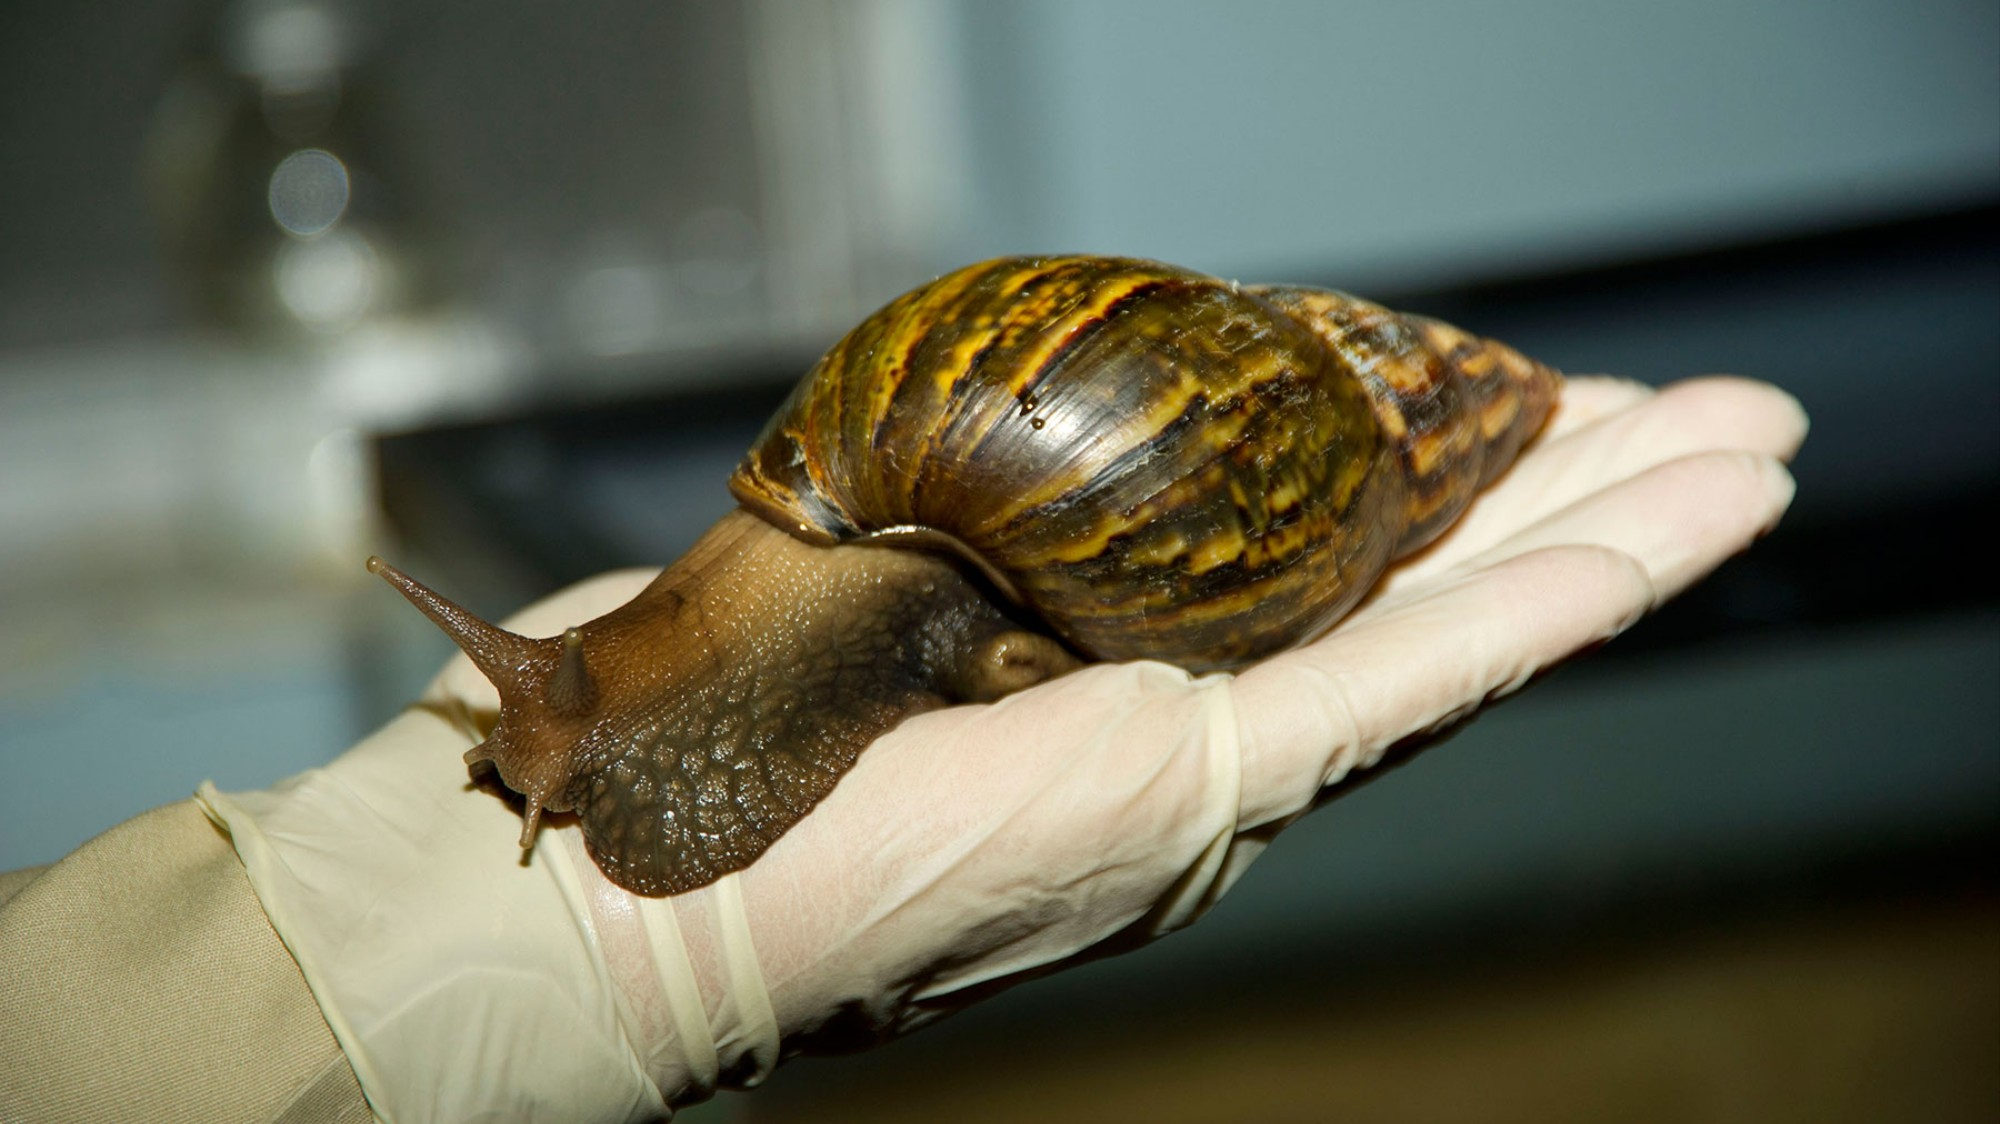 Eat Giant African Snails Before They Eat Your House - VICE